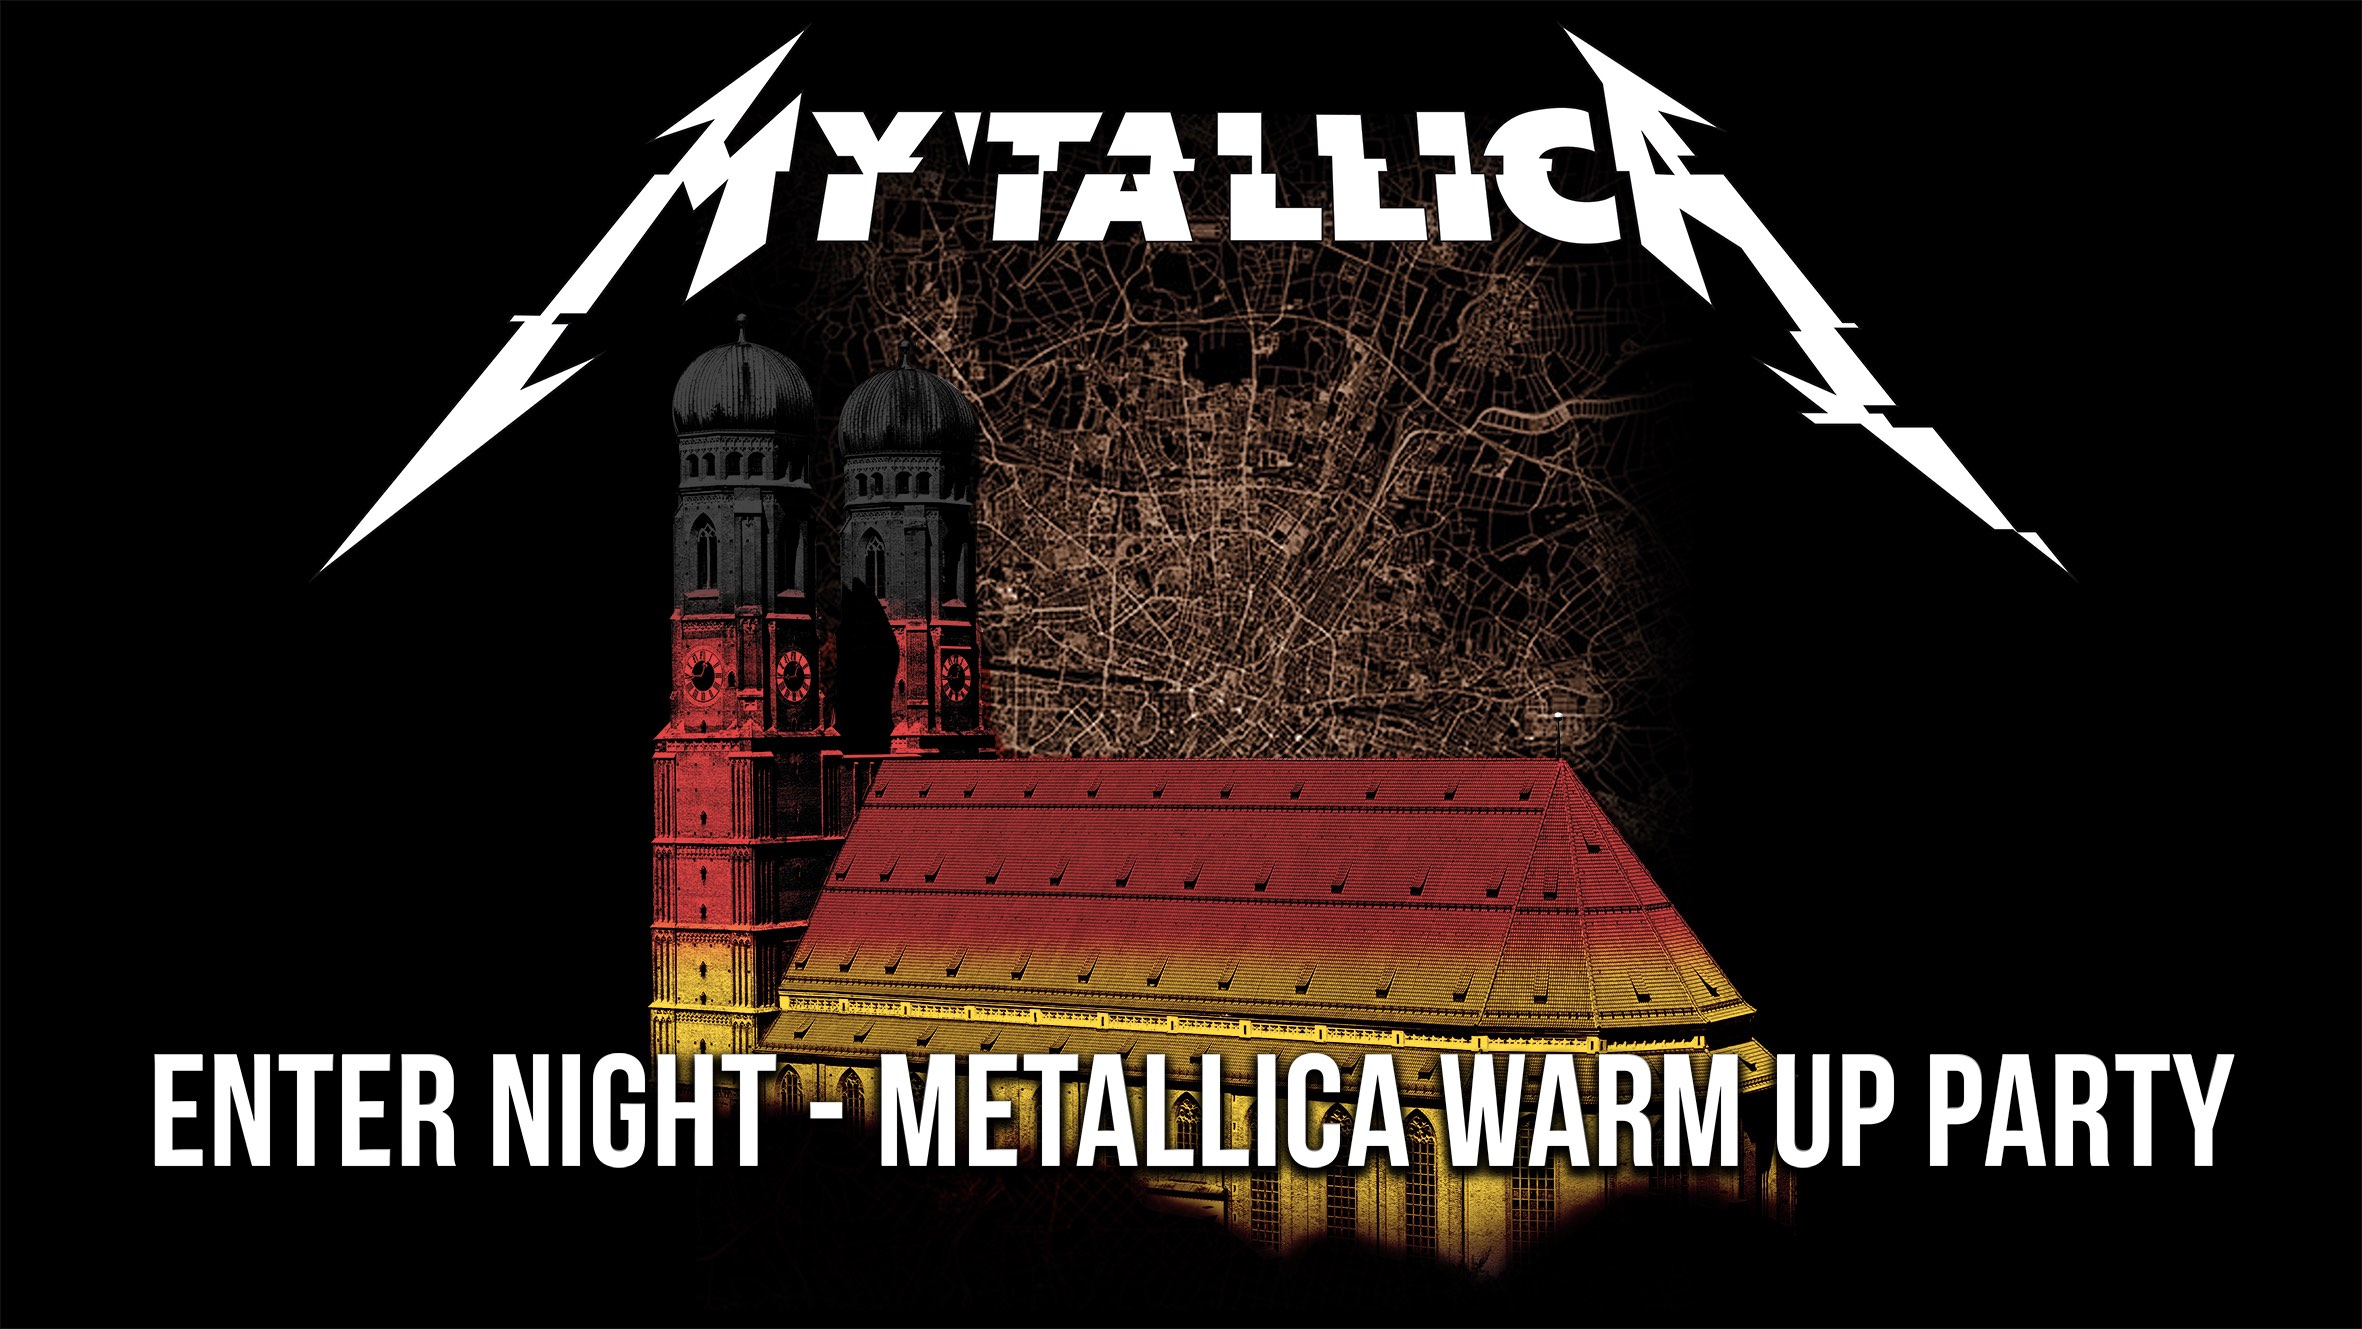 metallica-muenchen-2019-official-pre-party-mytallica